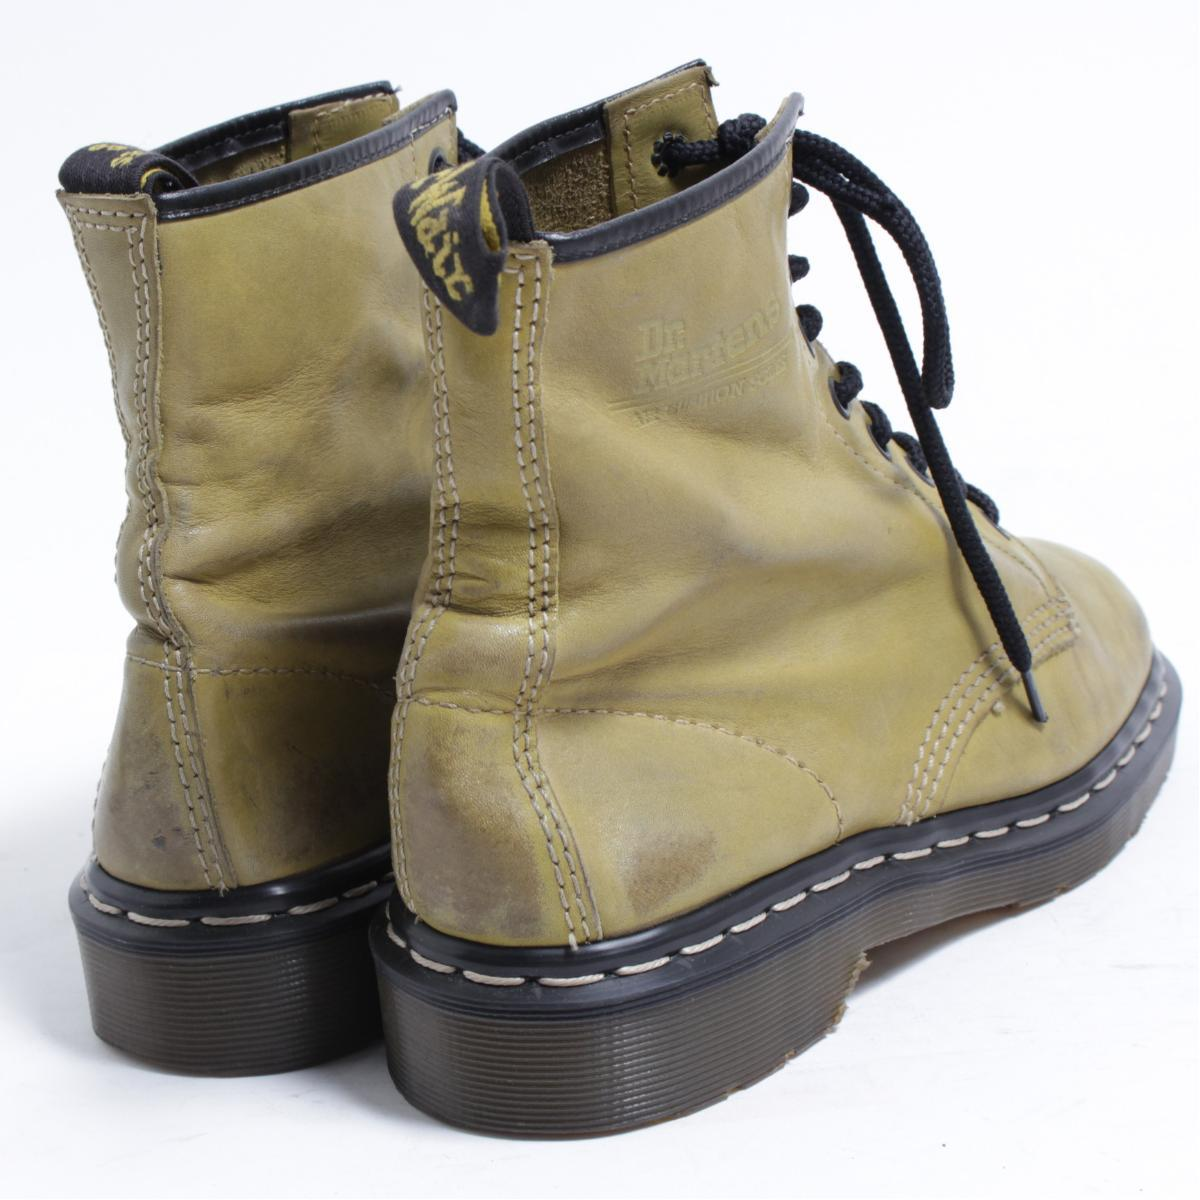 UK6 Lady's 24.5cm /boo1909 made in the doctor Martin Dr.Martens 8 hall boots U.K.